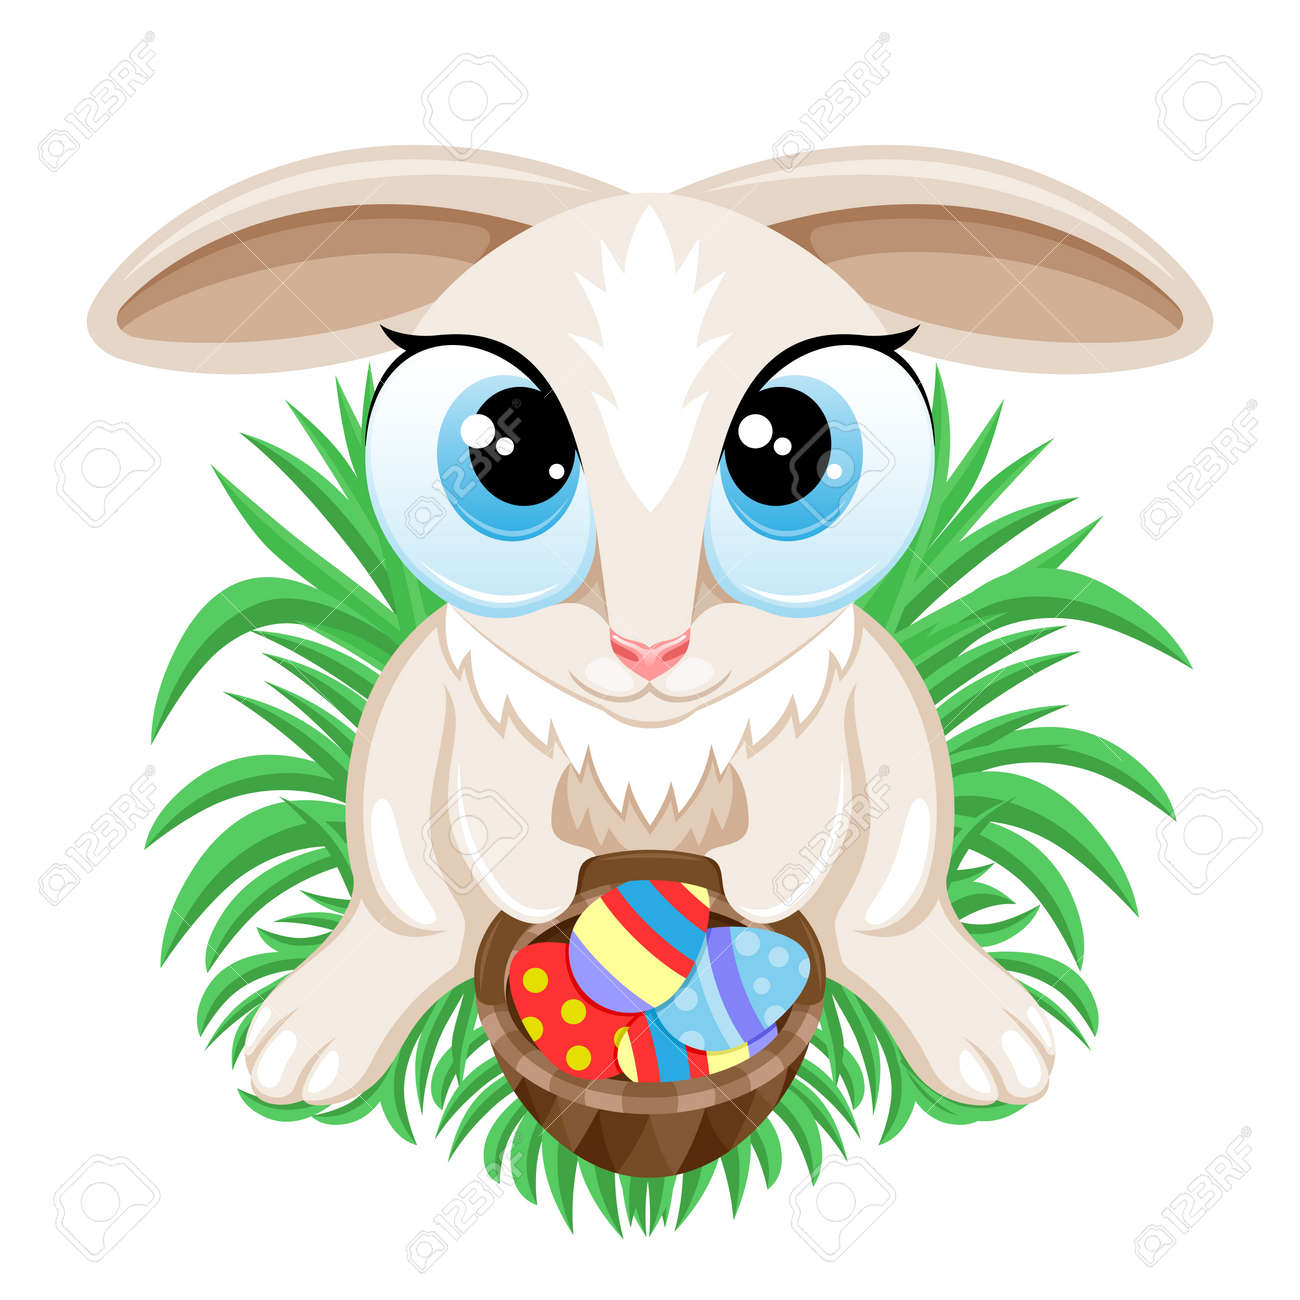 Easter bunny with Easter eggs in a basket sitting on the grass on a white background. - 168969132